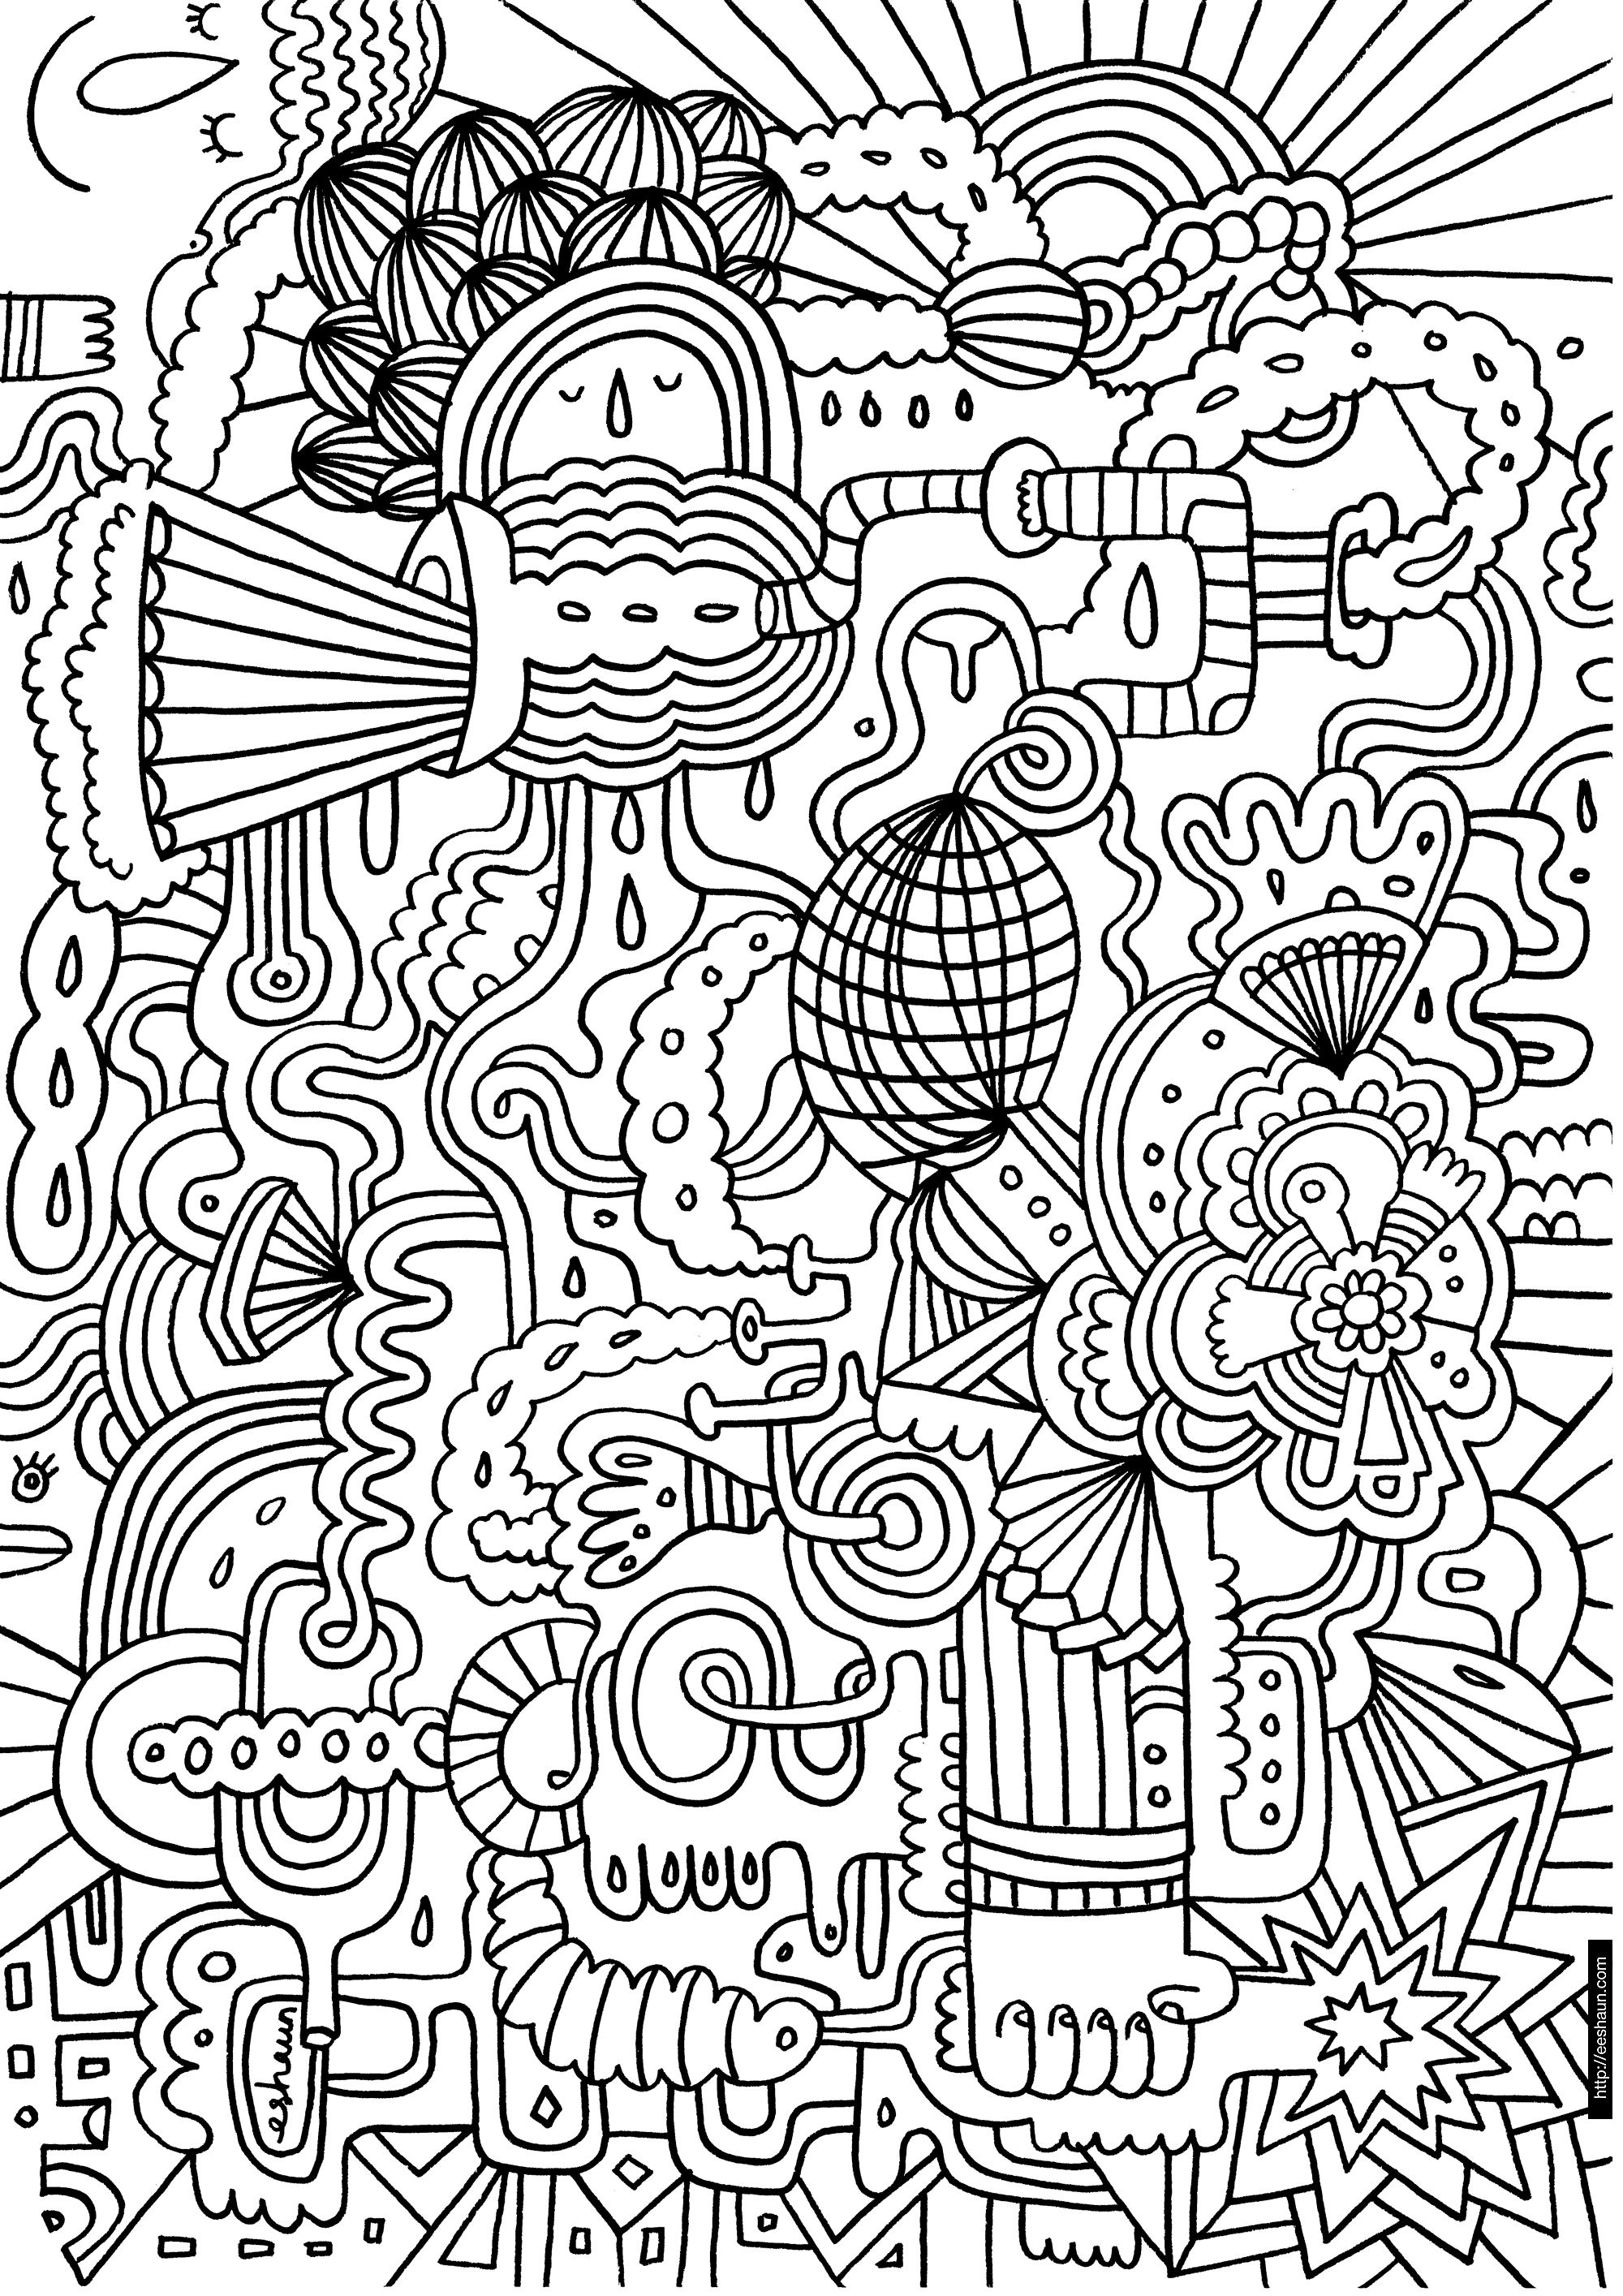 Coloring Pages Hard Abstract Coloring Pages Coloring Pages For Teenagers Pattern Coloring Pages